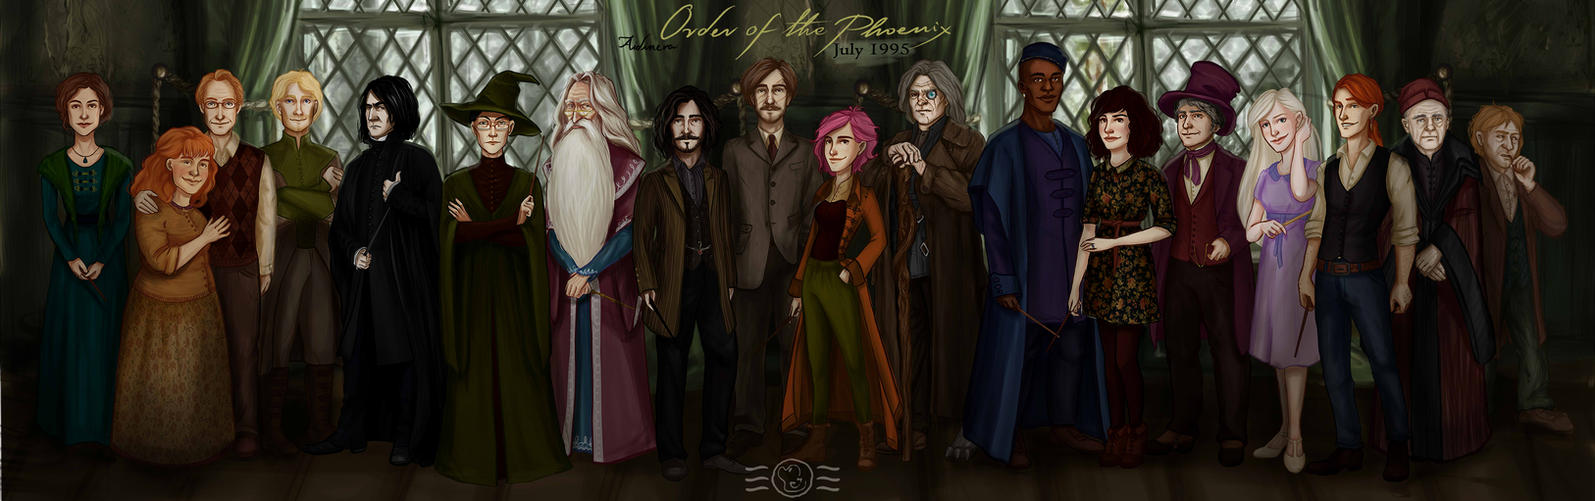 Order of the Phoenix 1995 by aidinera